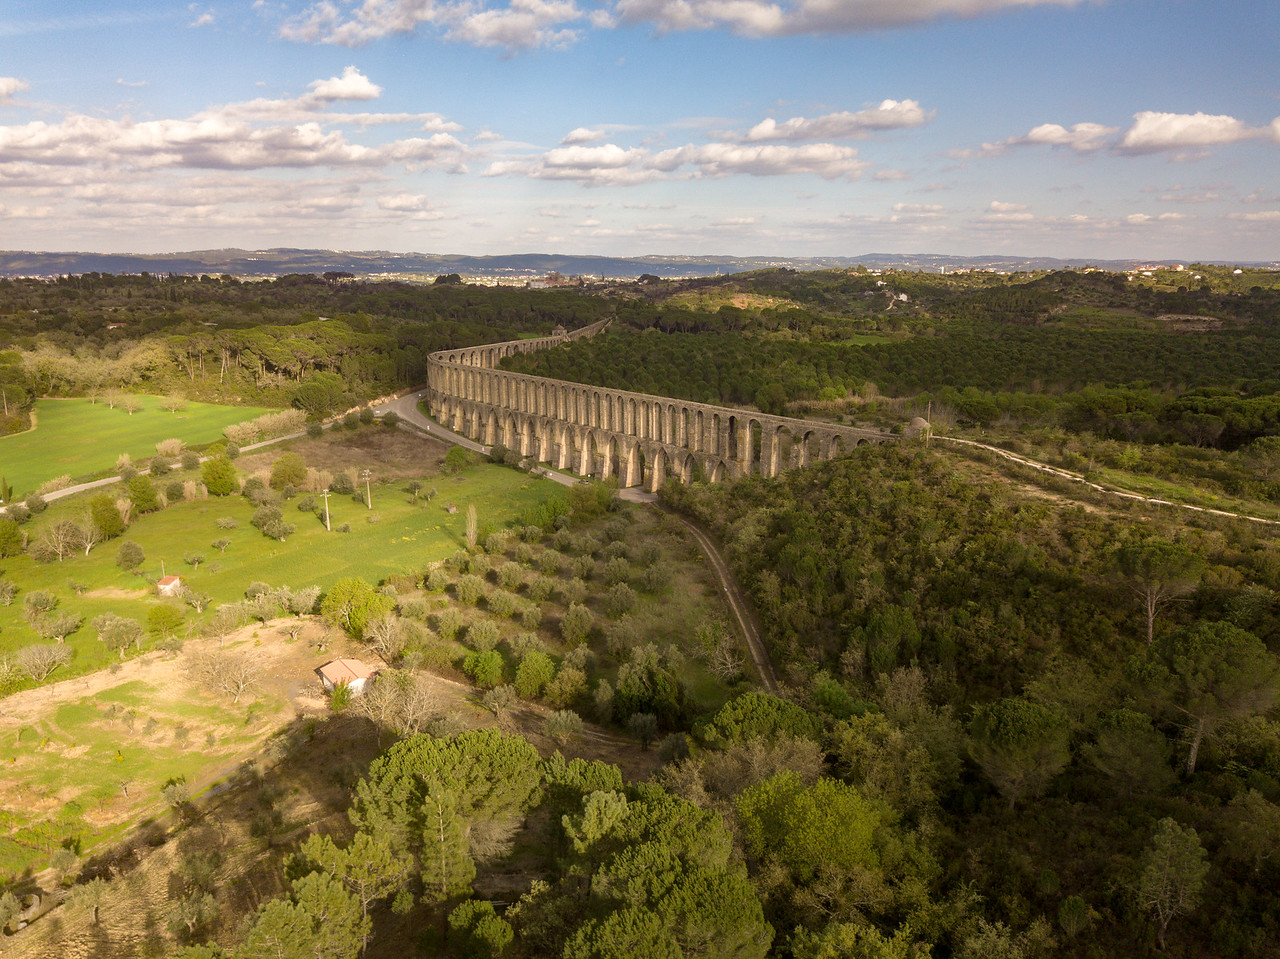 Drone Image of the Aqueduct near Tomar, Portugal